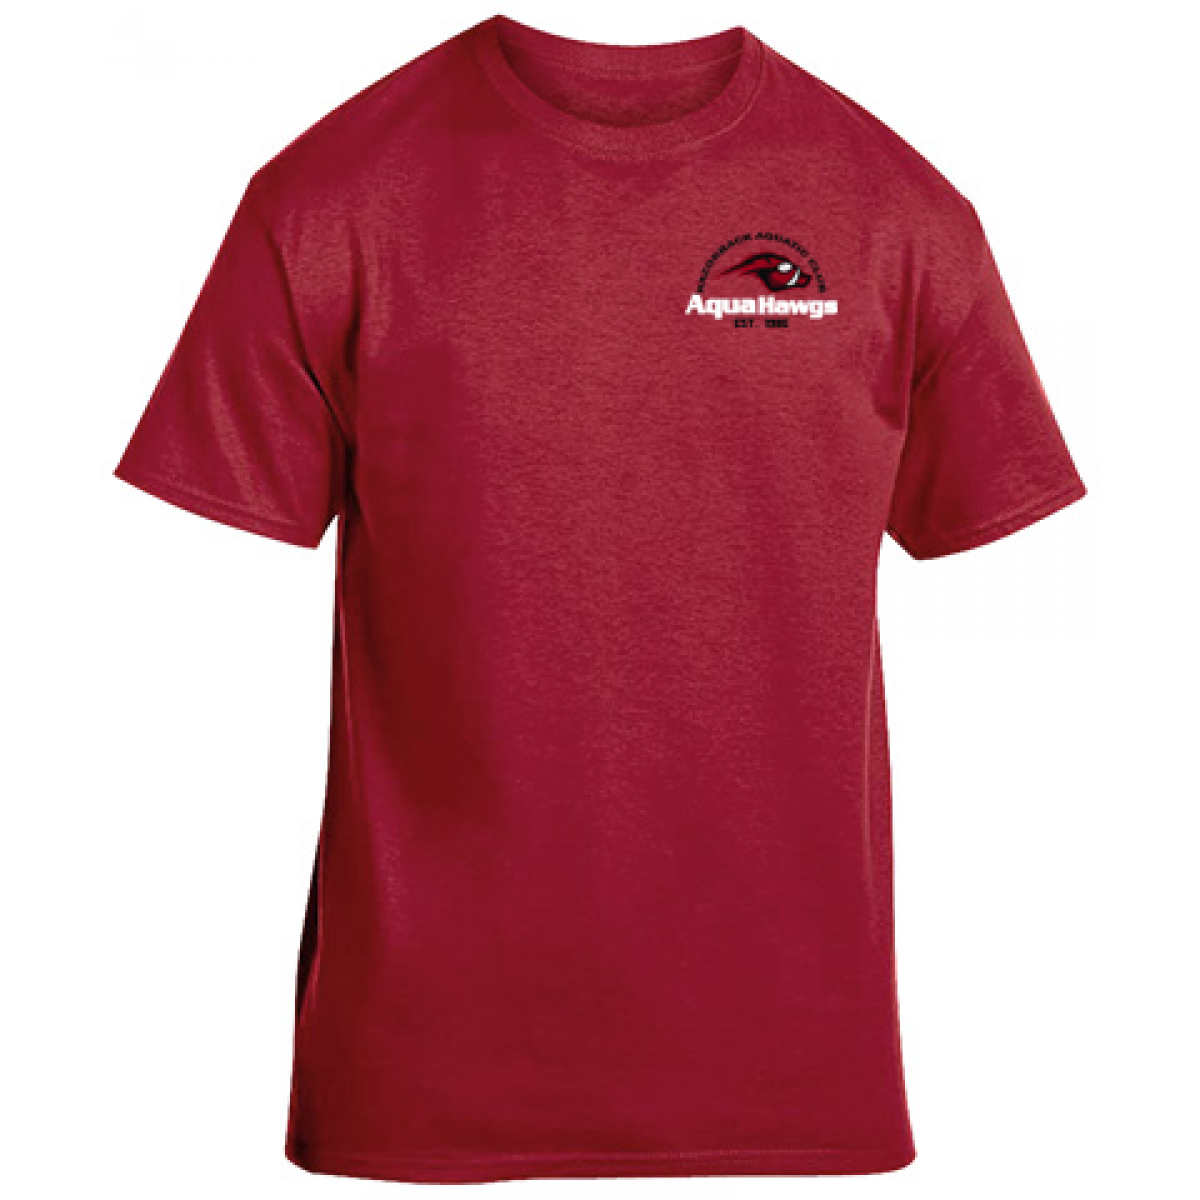 Gildan Cotton Short Sleeve T-Shirt - Cardinal Red-Cardinal Red-YM